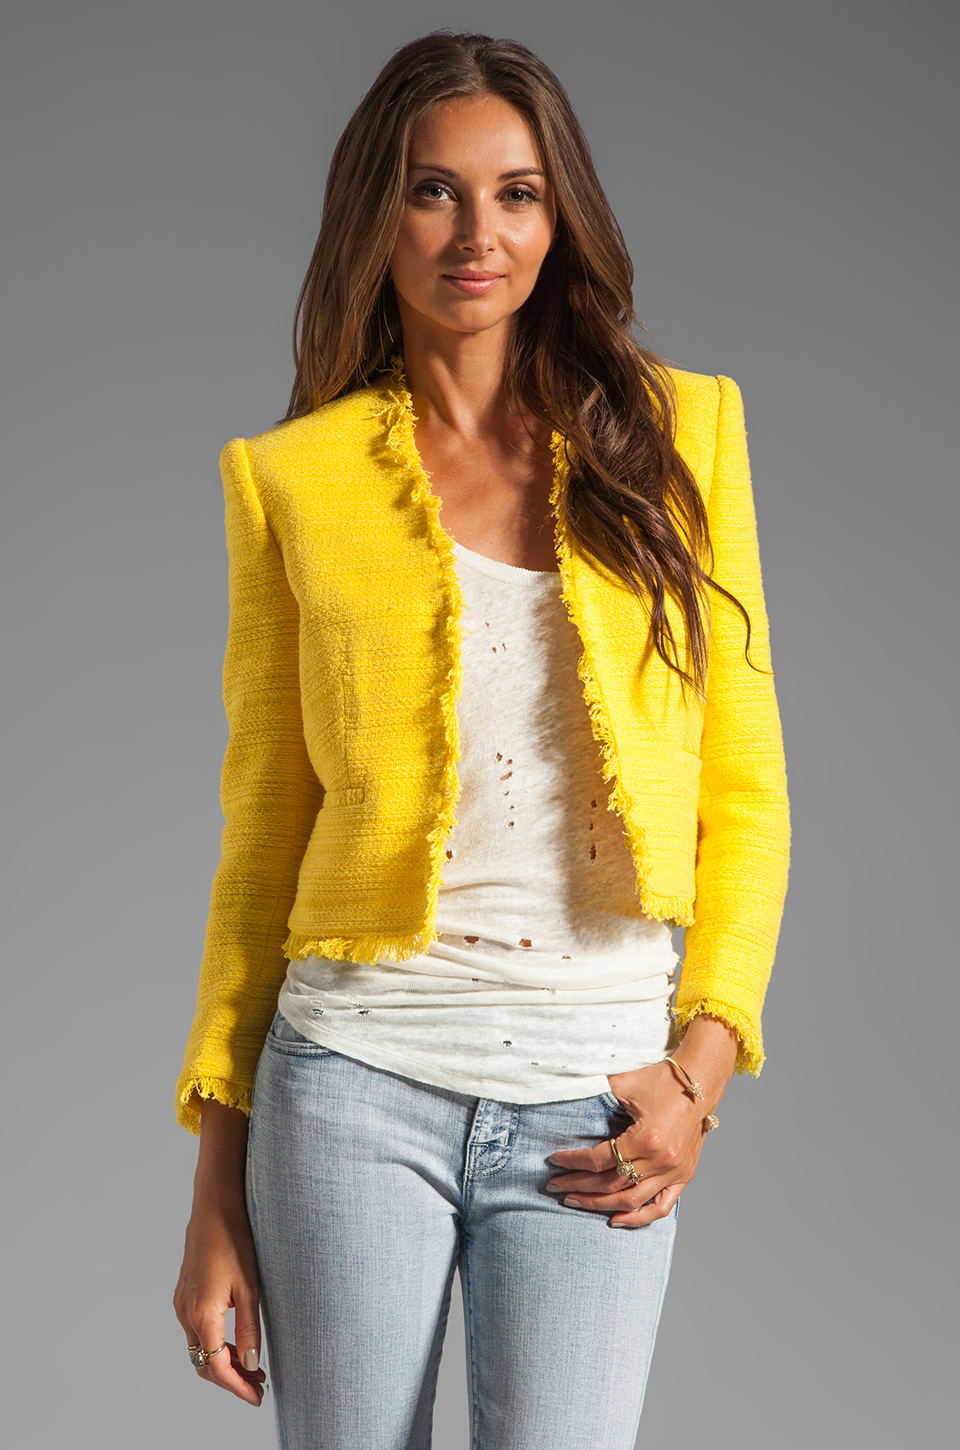 Alice + Olivia Princeton Open Front Box Jacket in Light Yellow